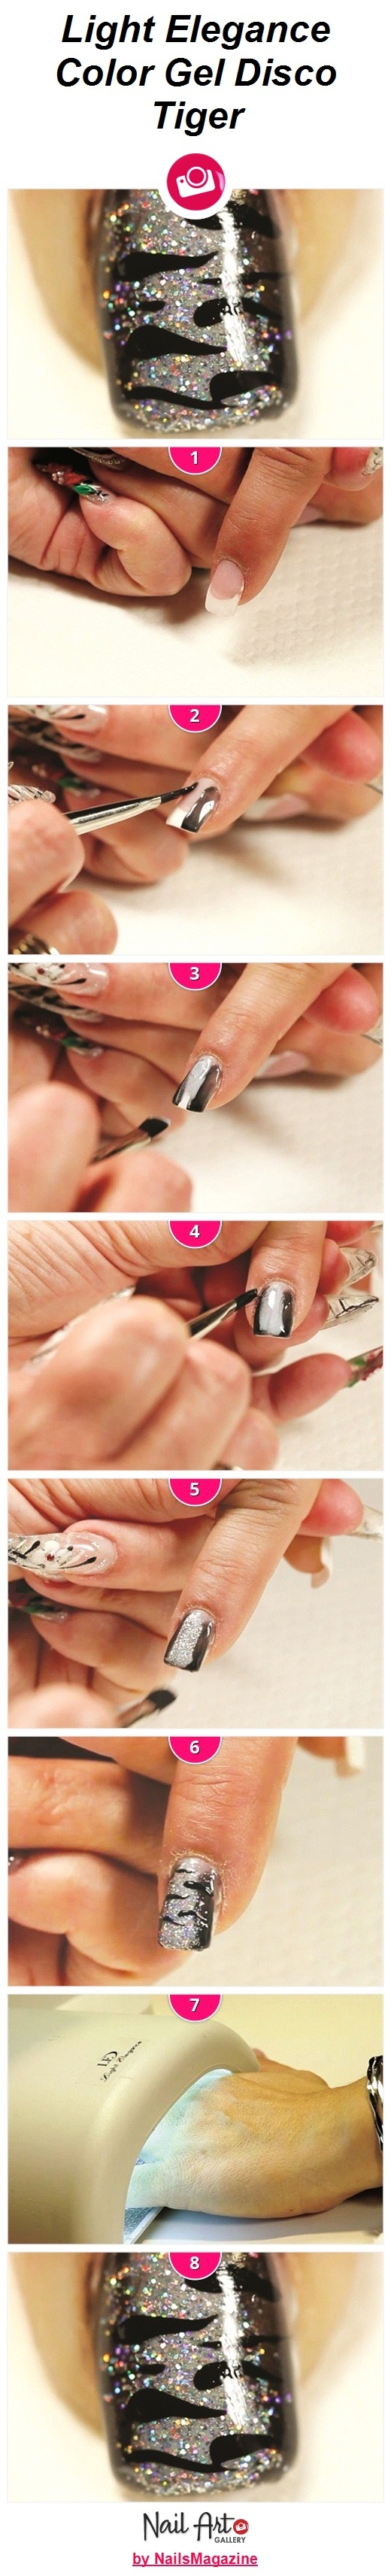 Light Elegance Color Gel Disco Tiger Nail Art How-To from Nail Art Gallery